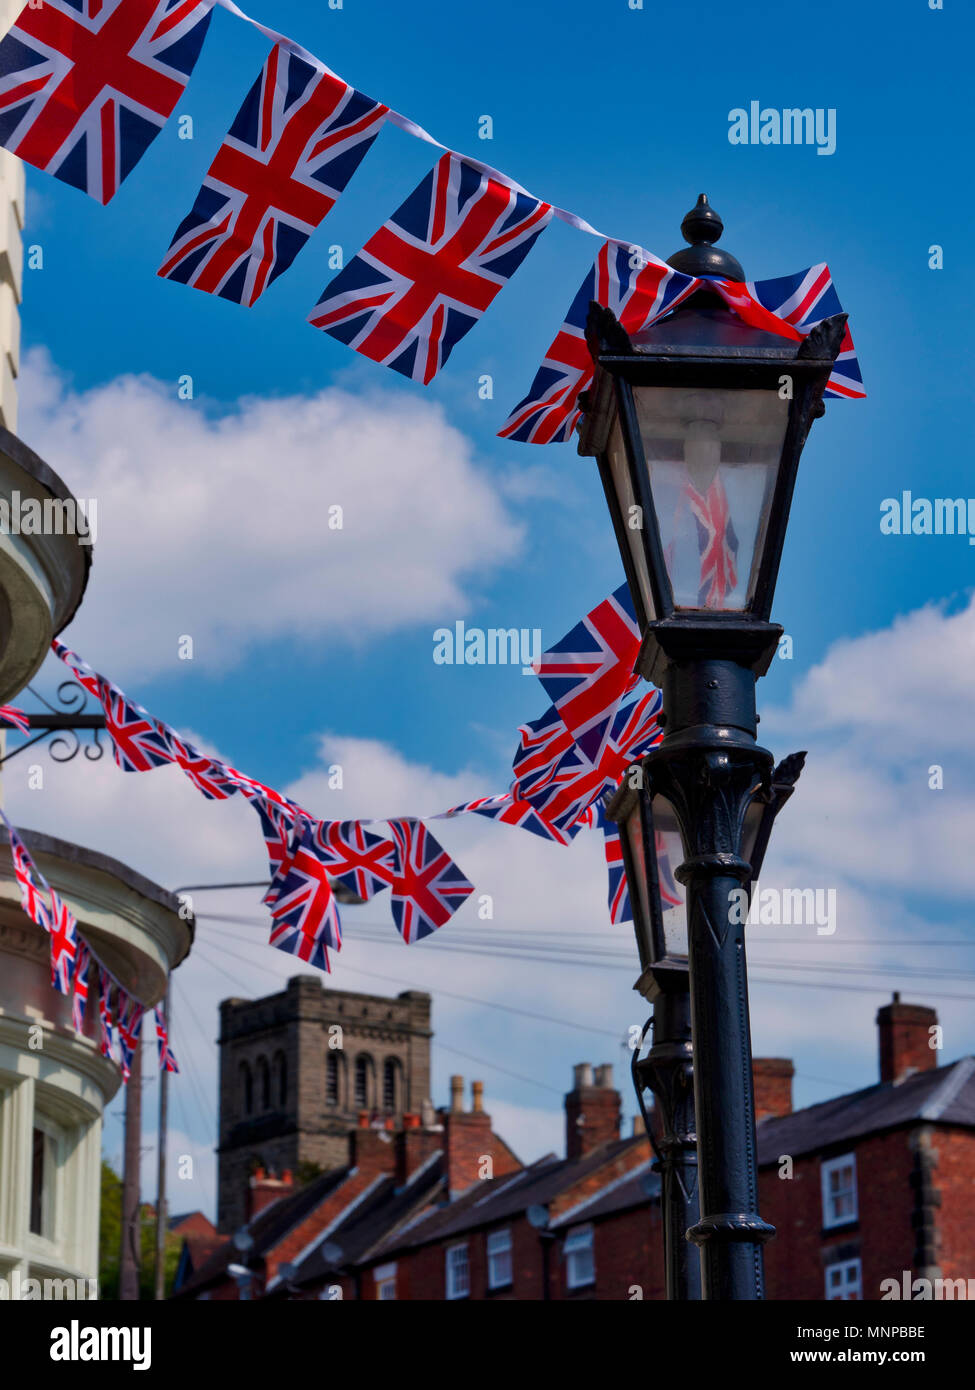 Ashbourne, Derbyshire, UK, 19 May 2018. A typical scene in an English town with Royal Union Jack Flags flying on the day of the Royal wedding in Ashbourne, Derbyshire the gateway to the Peak District National Park Credit: Doug Blane/Alamy Live News - Stock Image